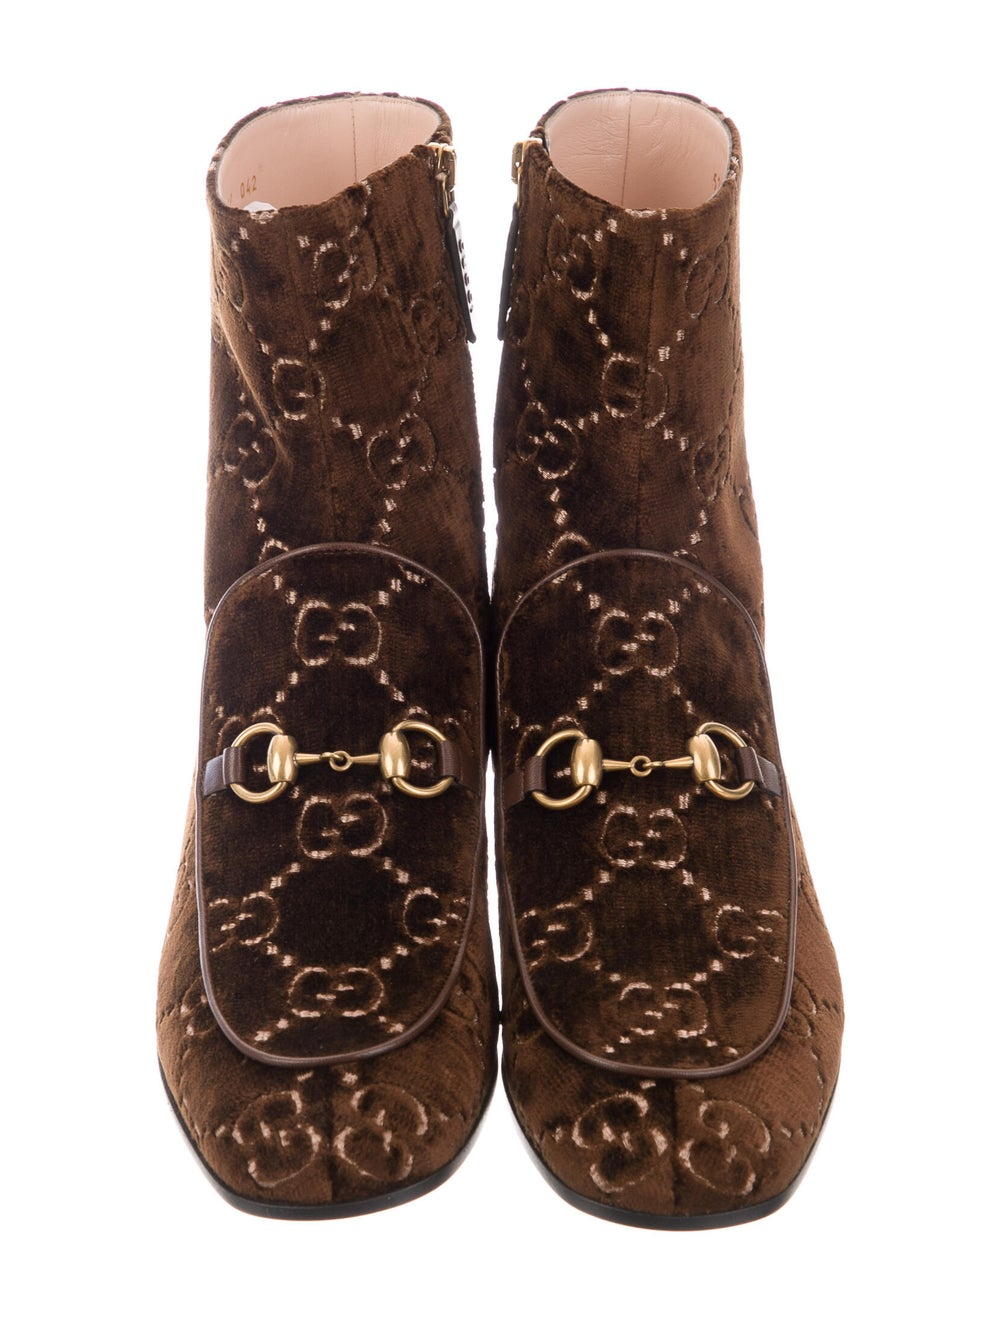 Gucci Horsebit Accent Patterned Boots Brown - image 3